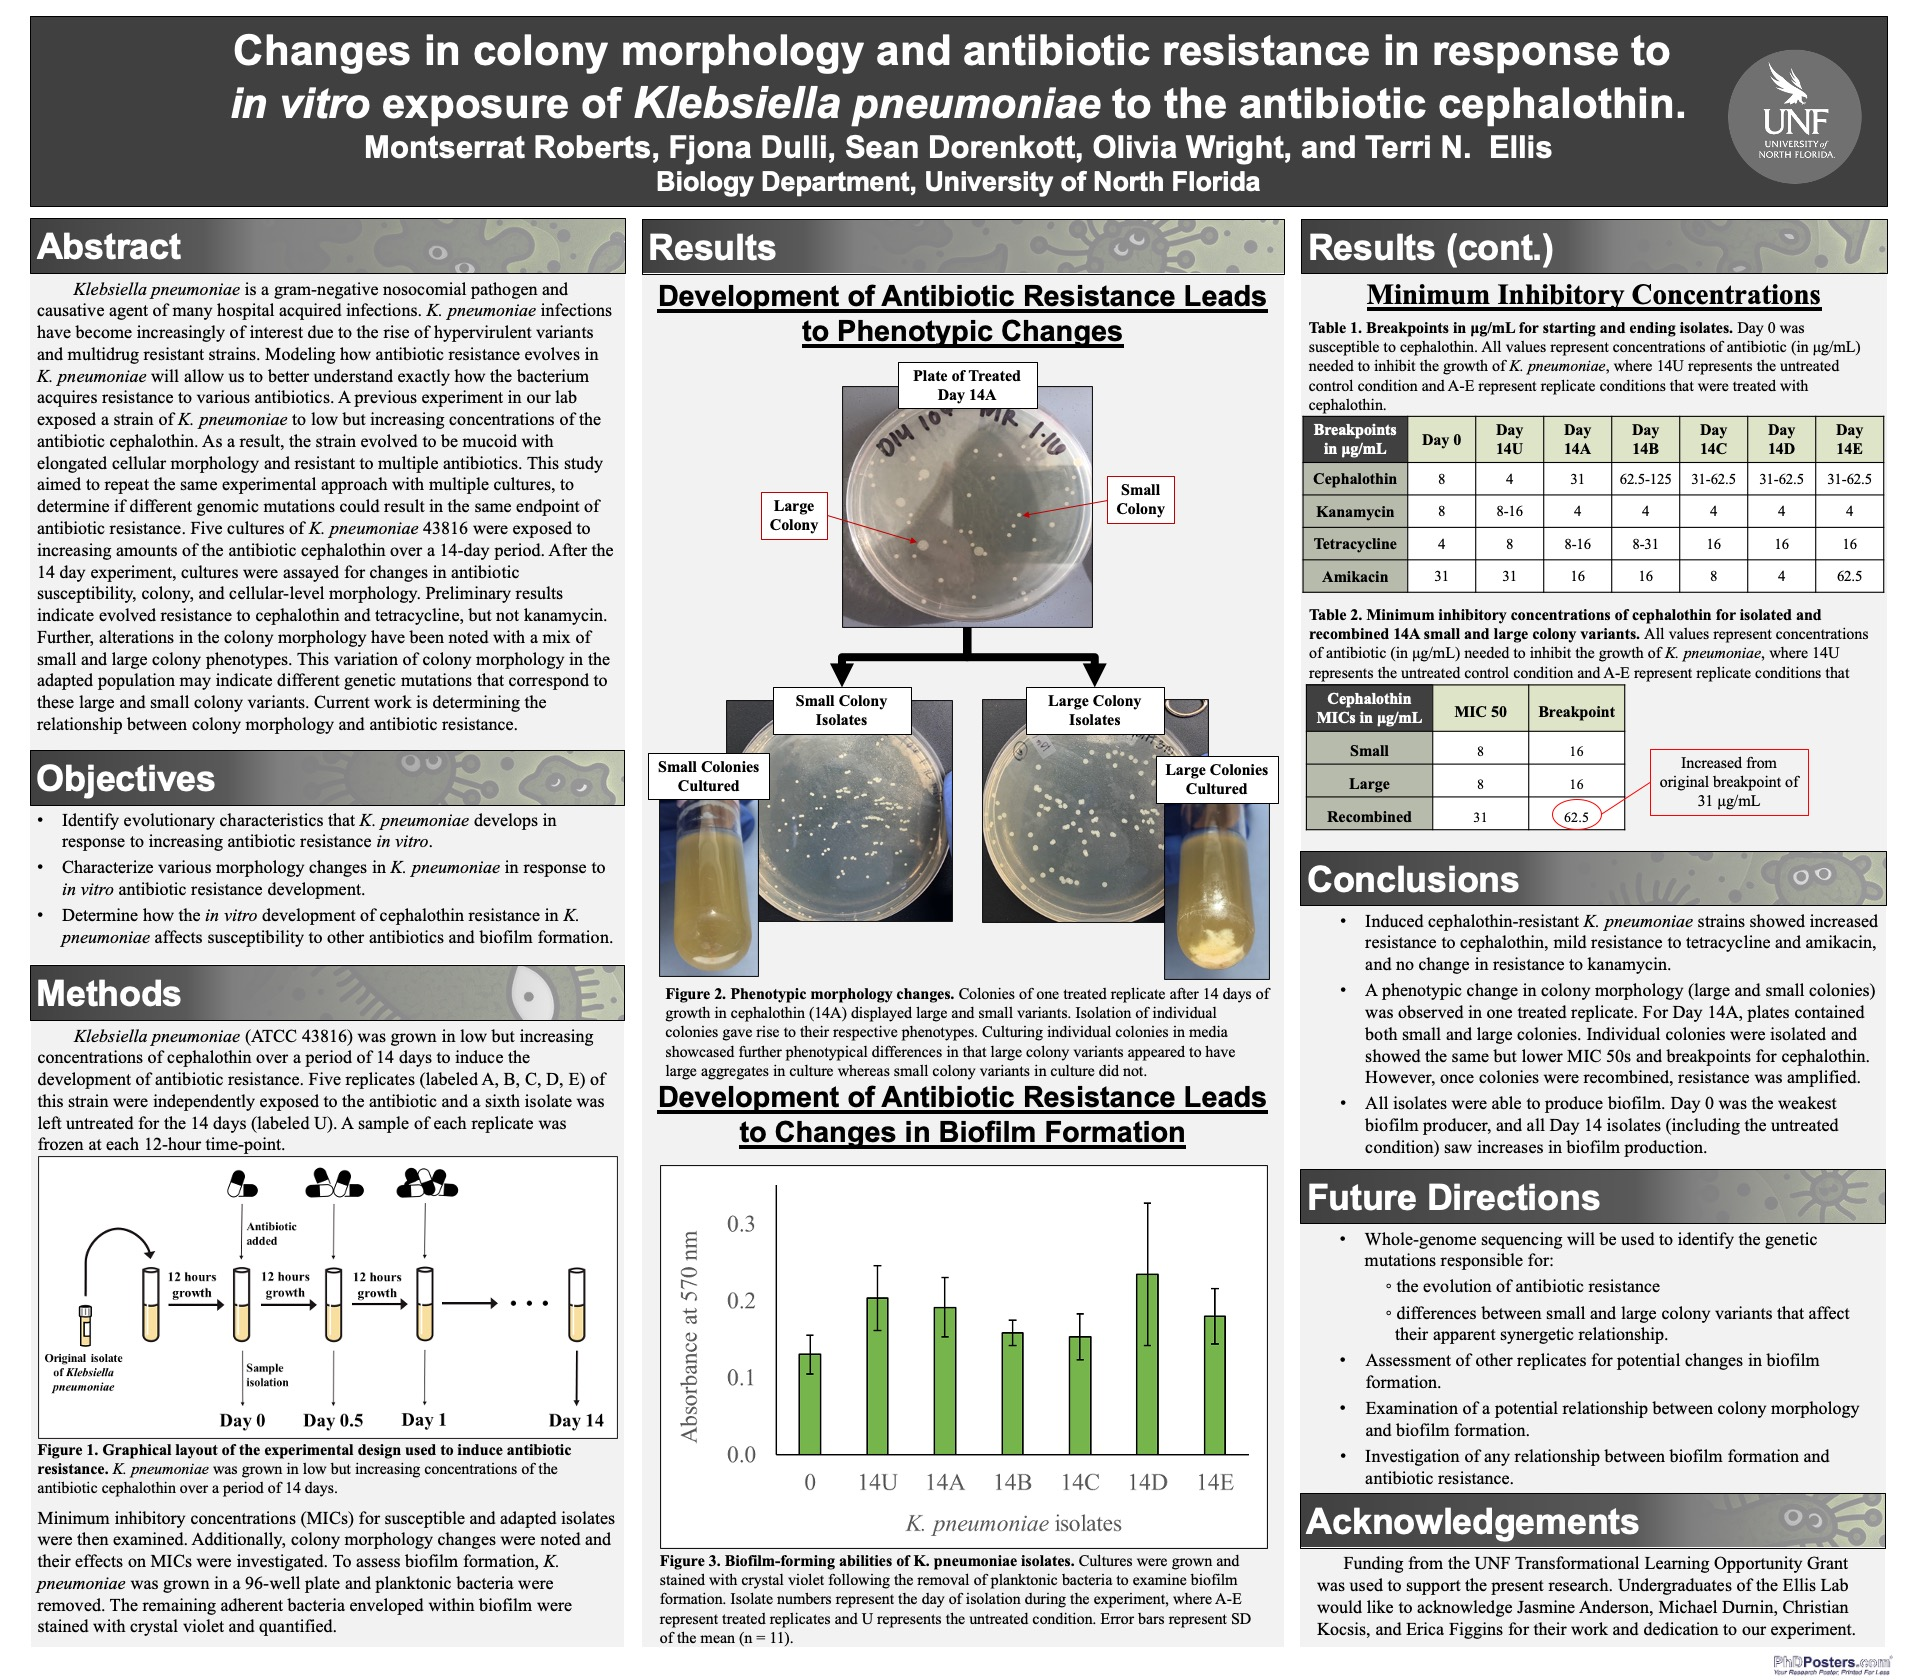 Changes in colony morphology and antibiotic resistance in response to in vitro exposure of Klebsiella pneumoniae to the antibiotic cephalothin poster